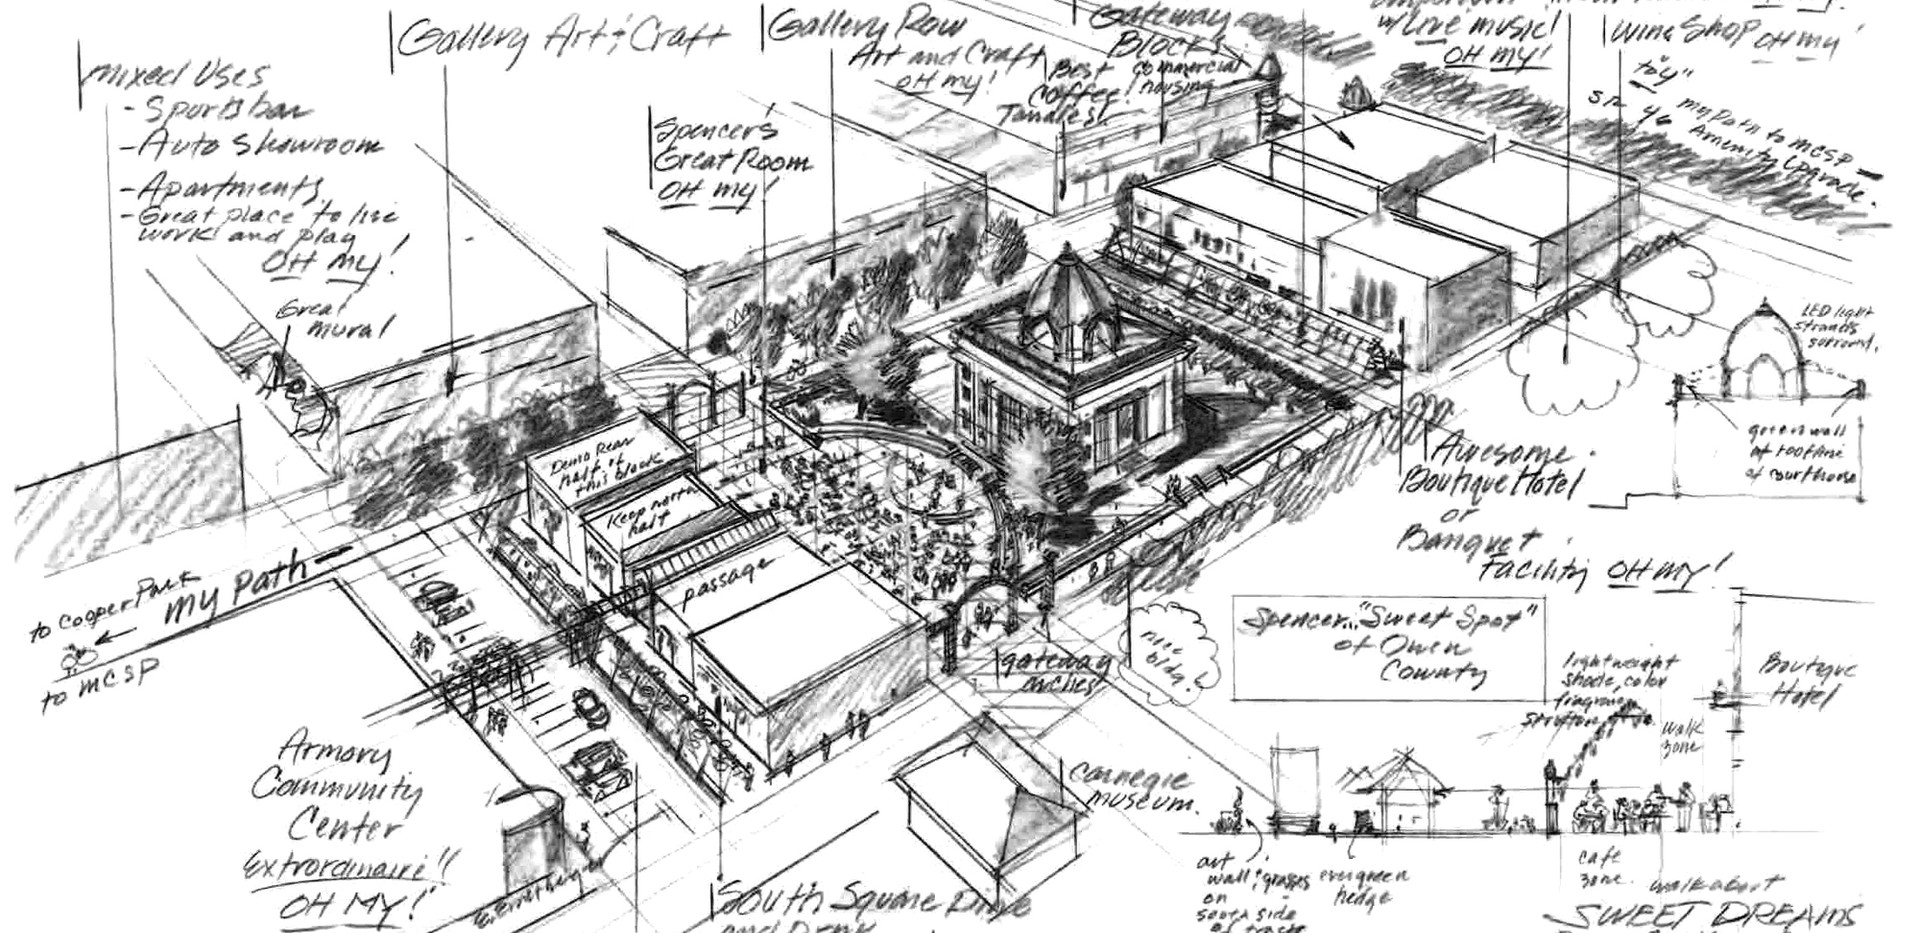 Overview sketch.jpg